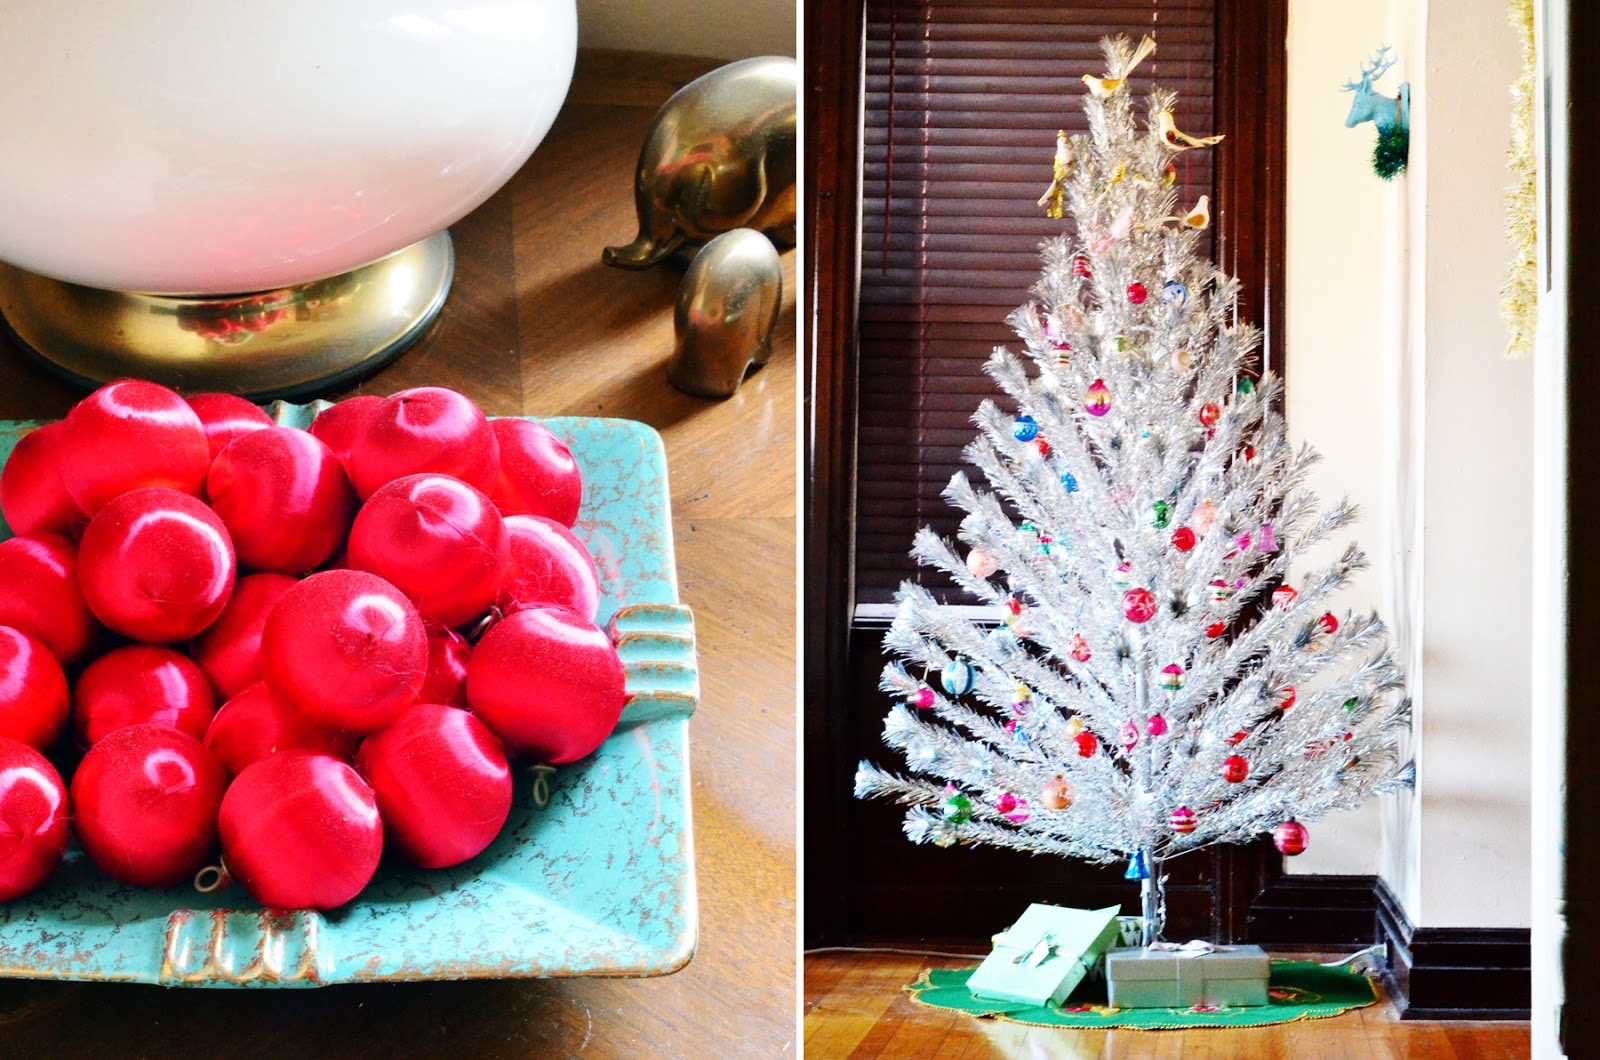 living room silk red ball ornaments in hubss grandmothers mid century dish aluminum christmas tree thrifted this summer with my grandmothers glass